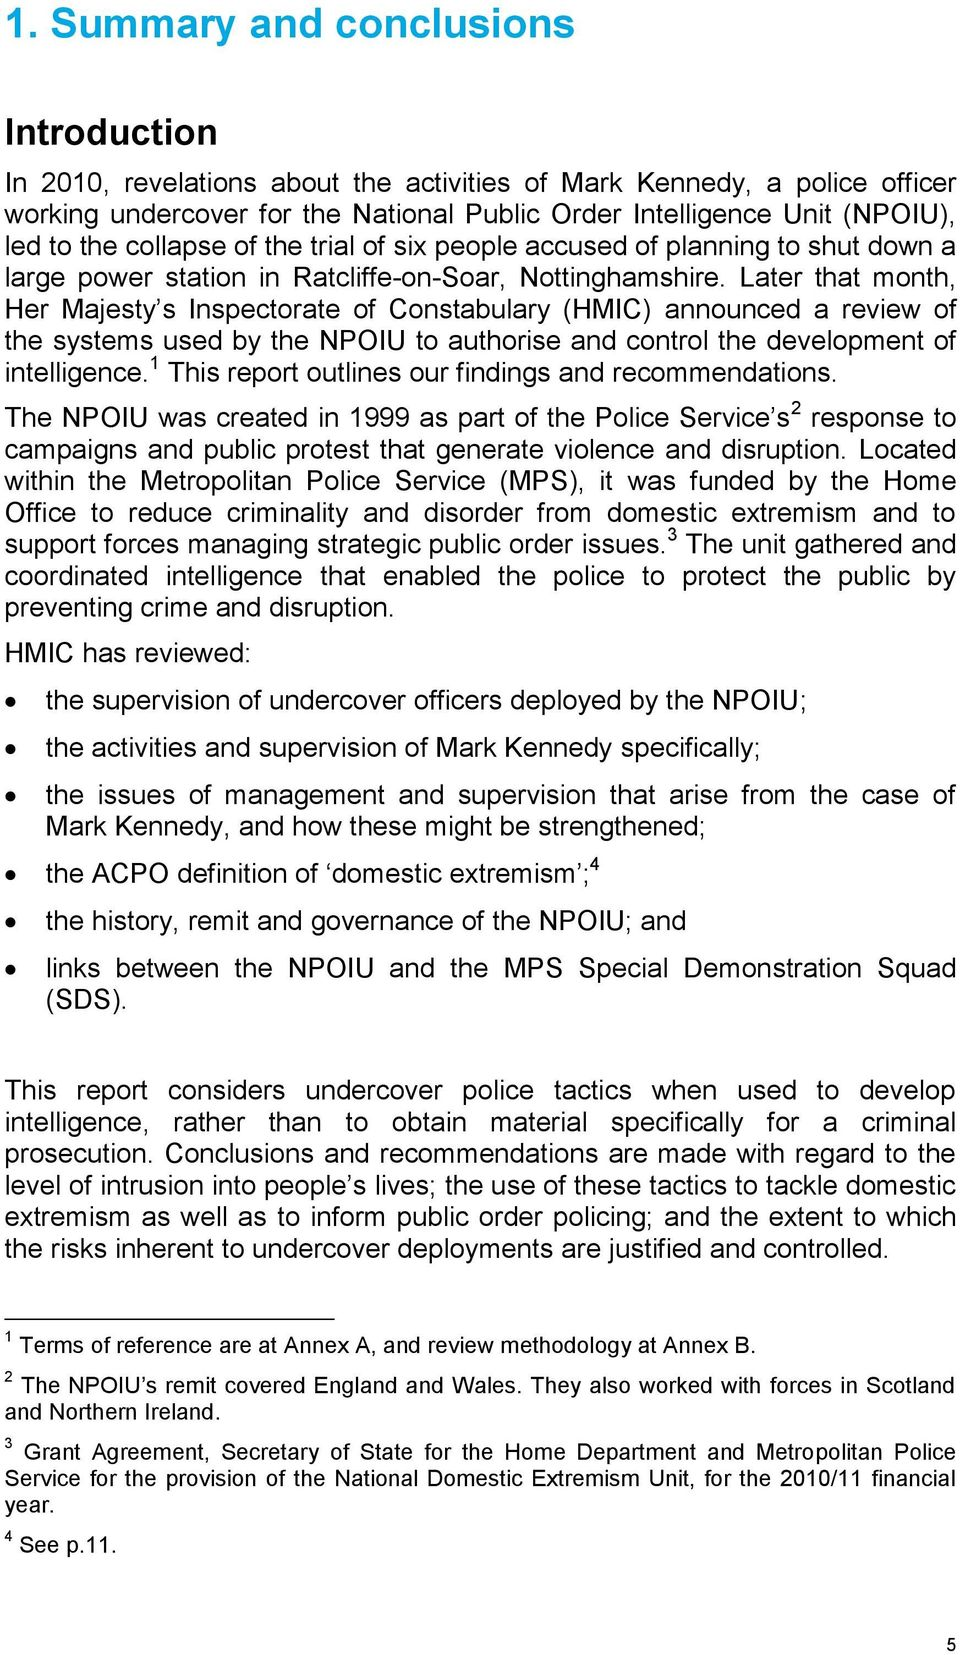 Later that month, Her Majesty s Inspectorate of Constabulary (HMIC) announced a review of the systems used by the NPOIU to authorise and control the development of intelligence.